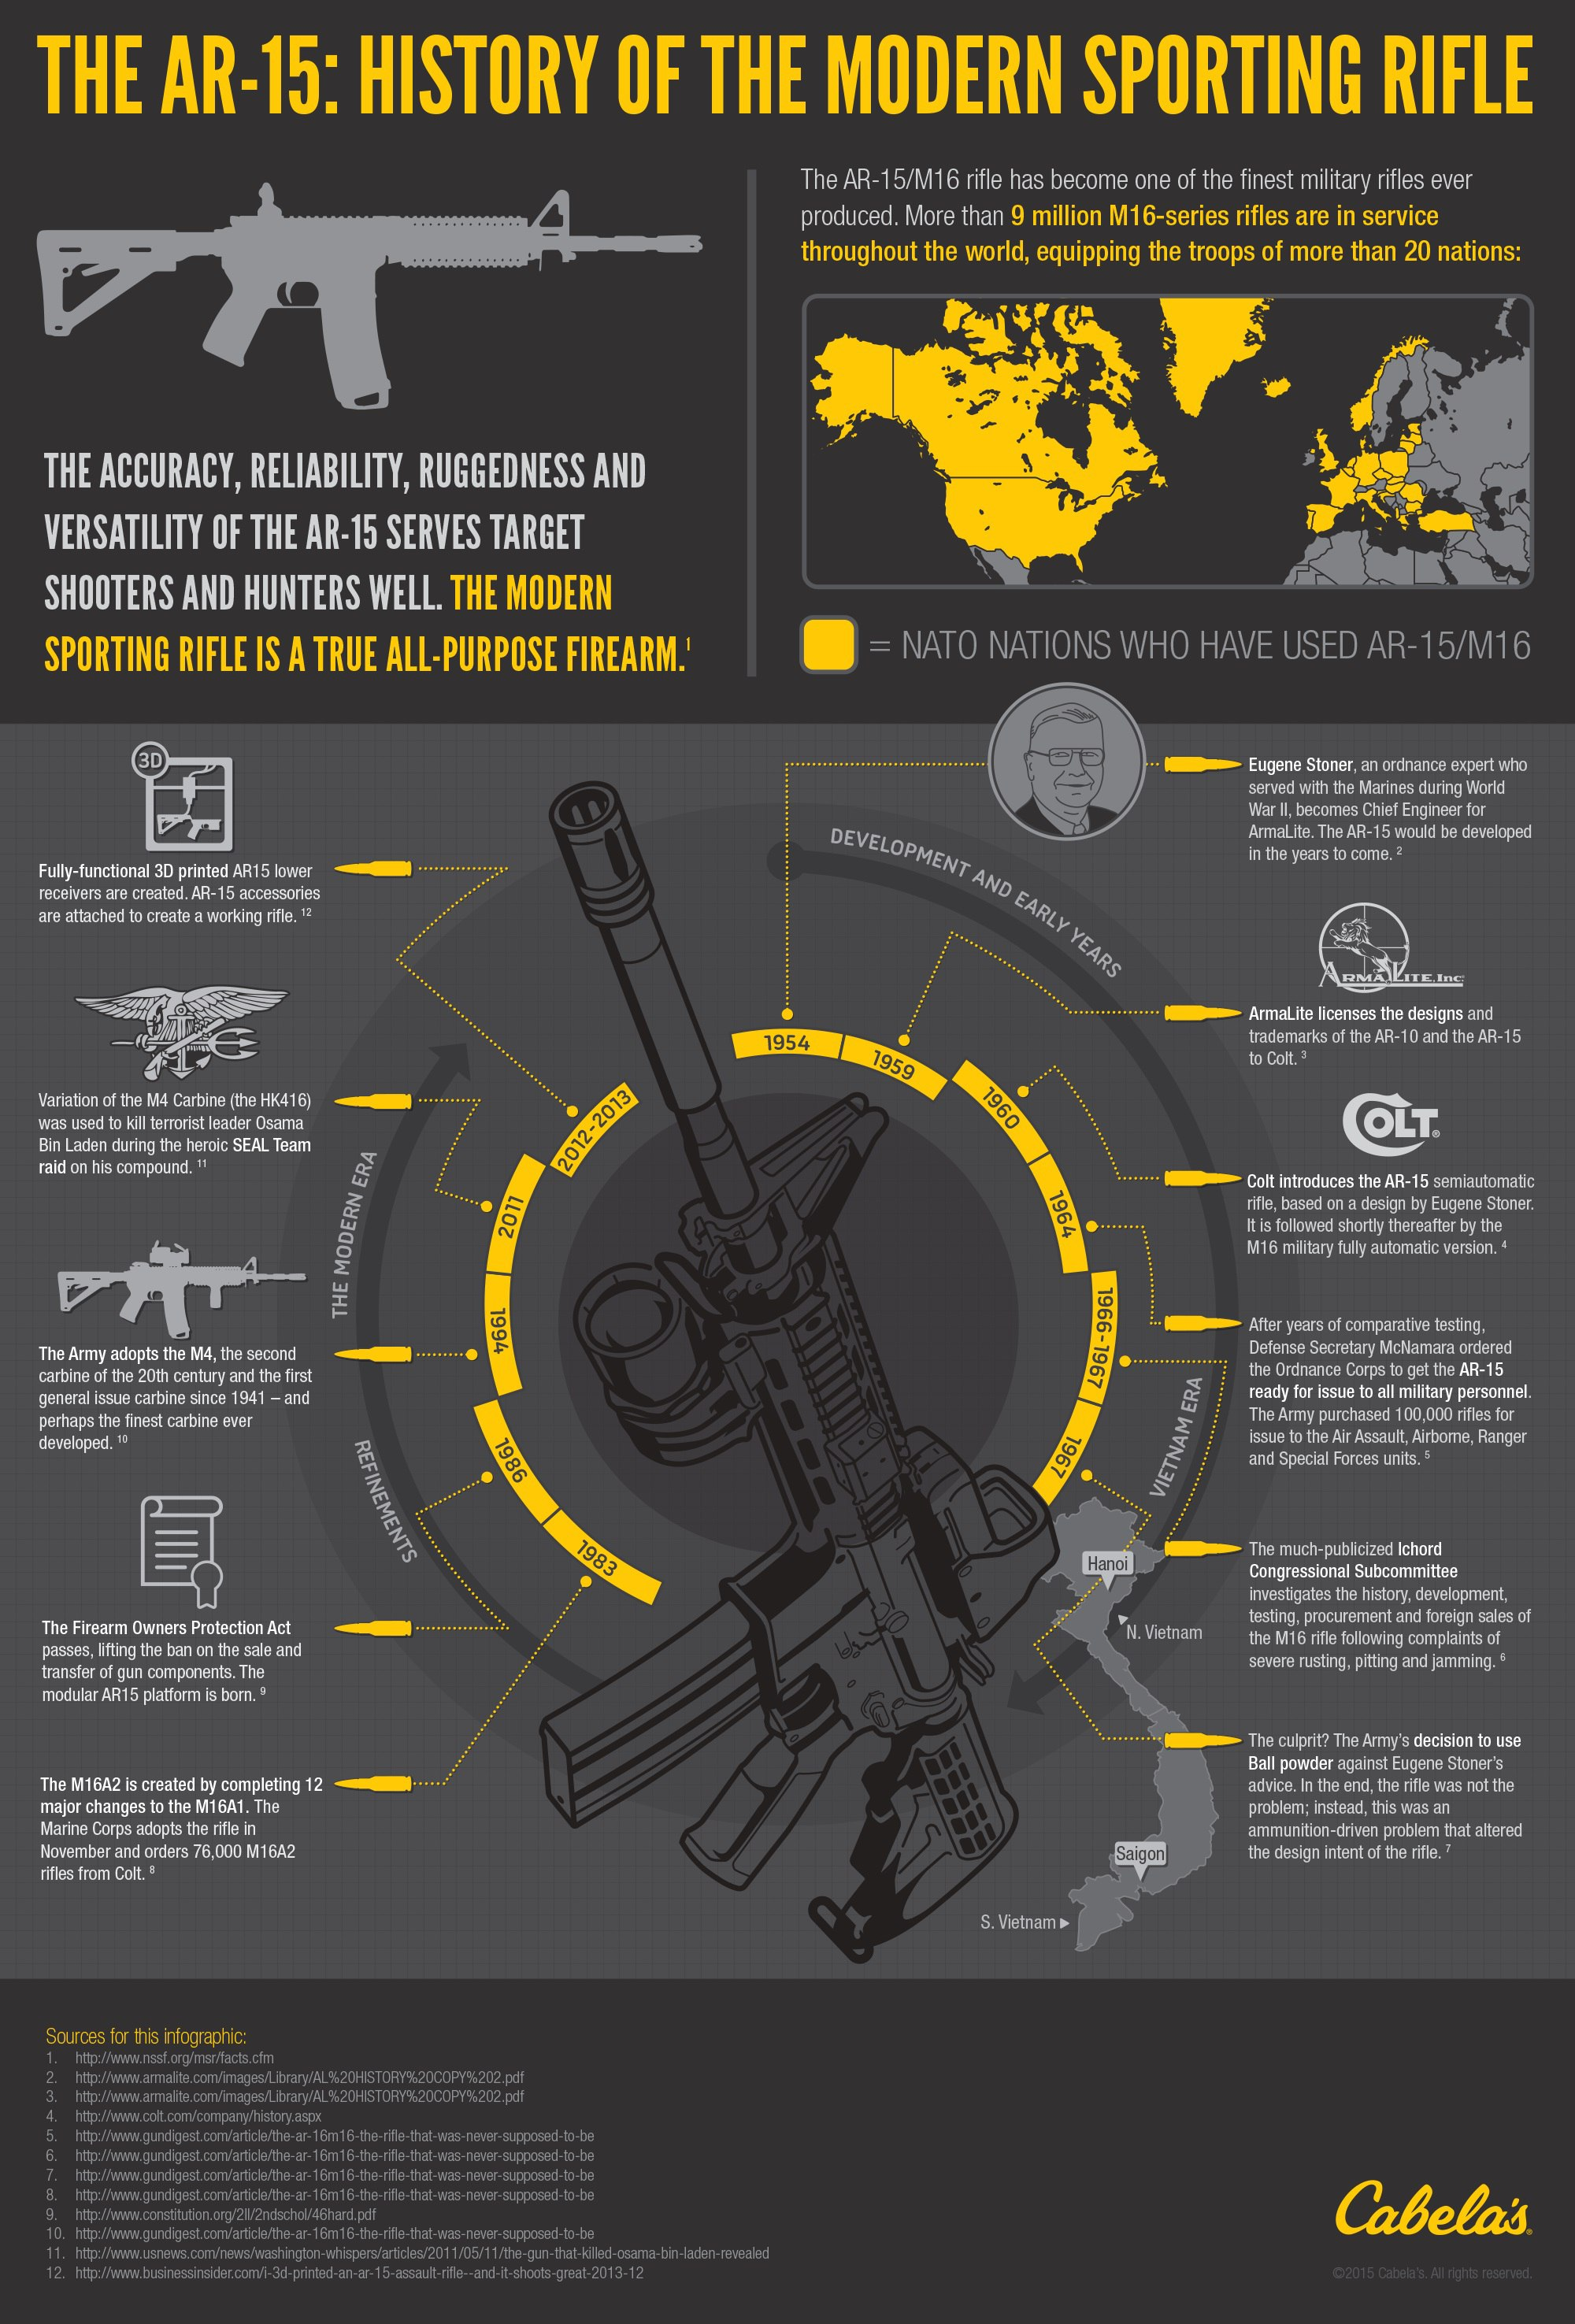 Cabelas History of AR15 Infographic